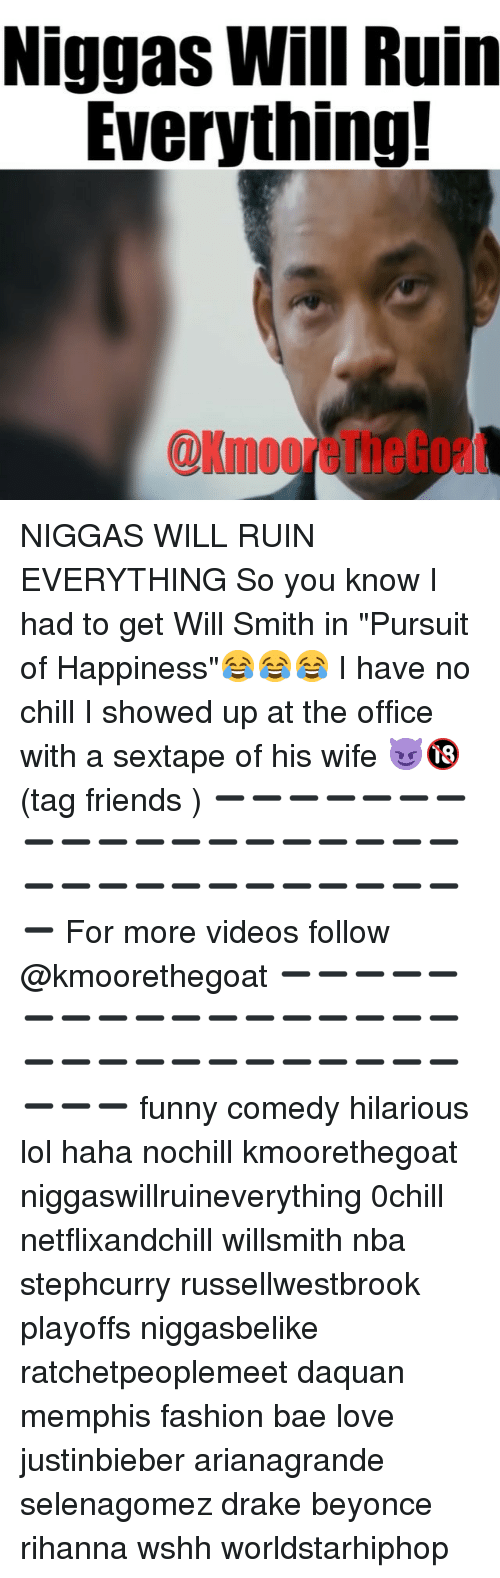 """Justinbieber: Niggas Will Ruin  Everything!  @KmooreTheGoat NIGGAS WILL RUIN EVERYTHING So you know I had to get Will Smith in """"Pursuit of Happiness""""😂😂😂 I have no chill I showed up at the office with a sextape of his wife 😈🔞 (tag friends ) ➖➖➖➖➖➖➖➖➖➖➖➖➖➖➖➖➖➖➖➖➖➖➖➖➖➖➖➖➖➖➖➖ For more videos follow @kmoorethegoat ➖➖➖➖➖➖➖➖➖➖➖➖➖➖➖➖➖➖➖➖➖➖➖➖➖➖➖➖➖➖➖➖ funny comedy hilarious lol haha nochill kmoorethegoat niggaswillruineverything 0chill netflixandchill willsmith nba stephcurry russellwestbrook playoffs niggasbelike ratchetpeoplemeet daquan memphis fashion bae love justinbieber arianagrande selenagomez drake beyonce rihanna wshh worldstarhiphop"""